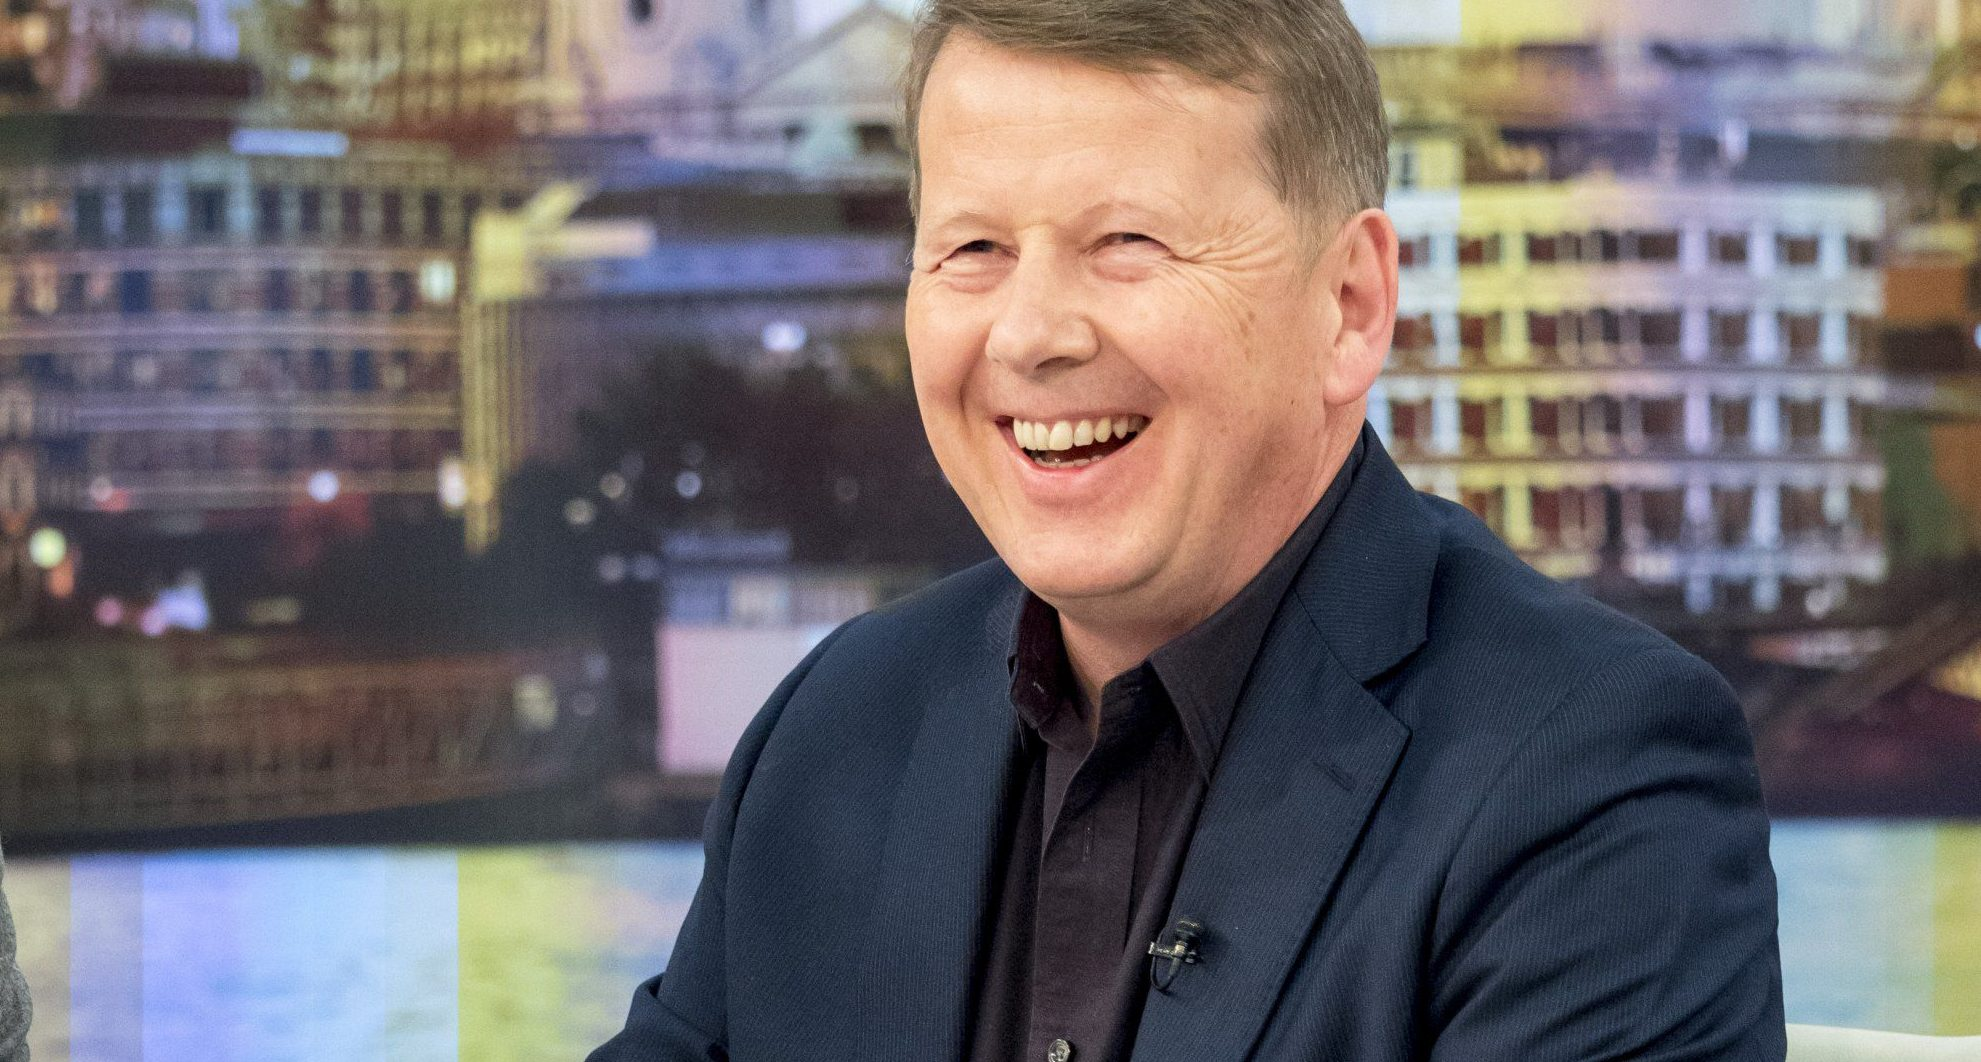 Bill Turnbull completes chemotherapy for prostate cancer: 'We've got an awfully long way to go'